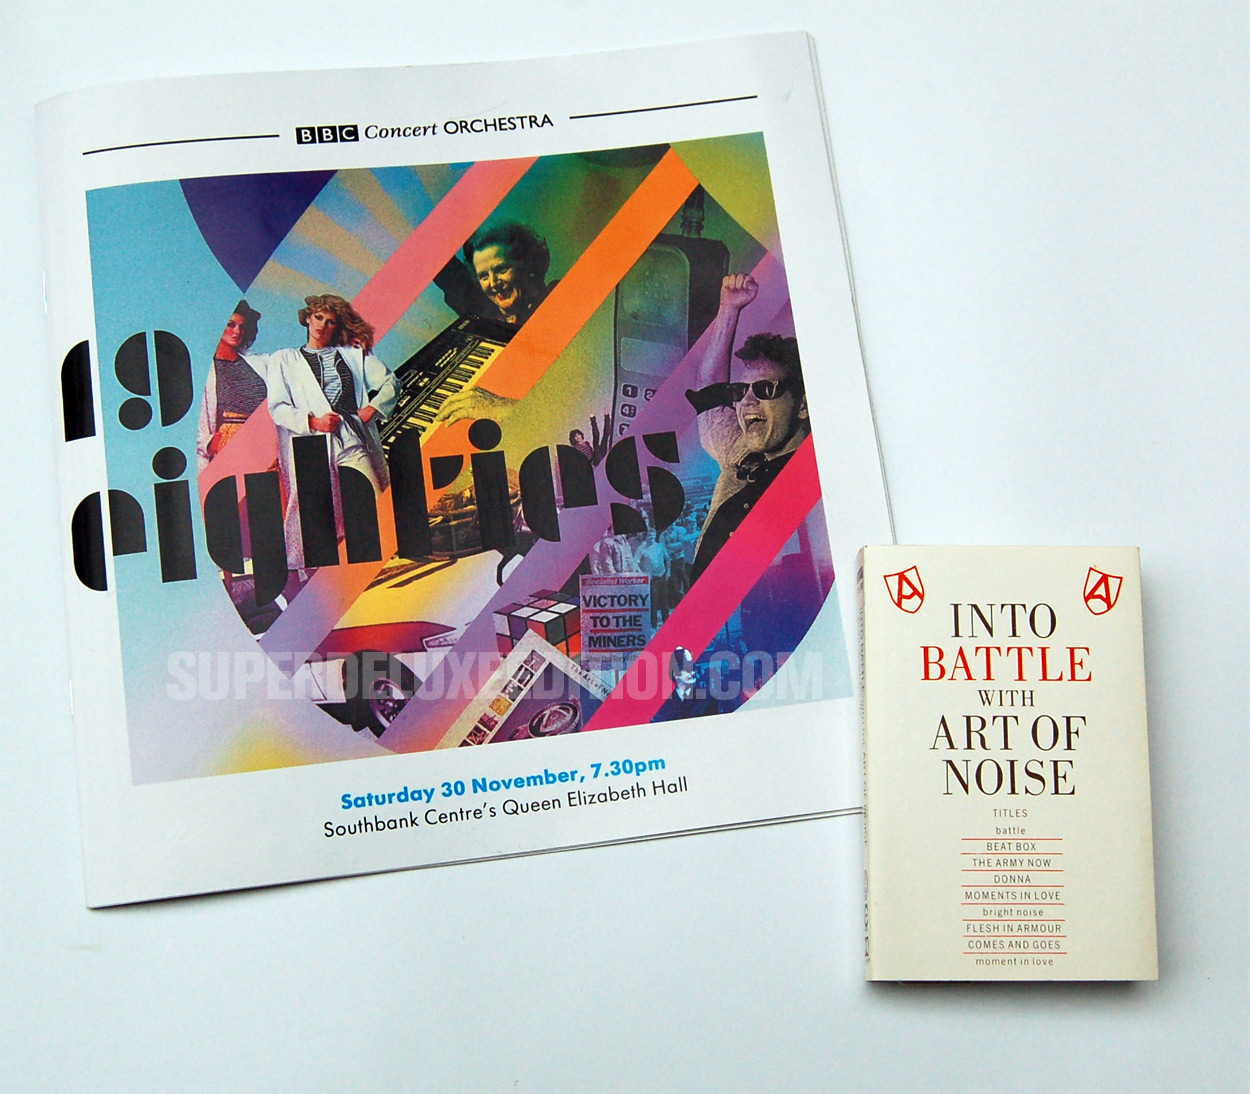 19 Eighties / Into Battle: Searching for the Art Of Noise